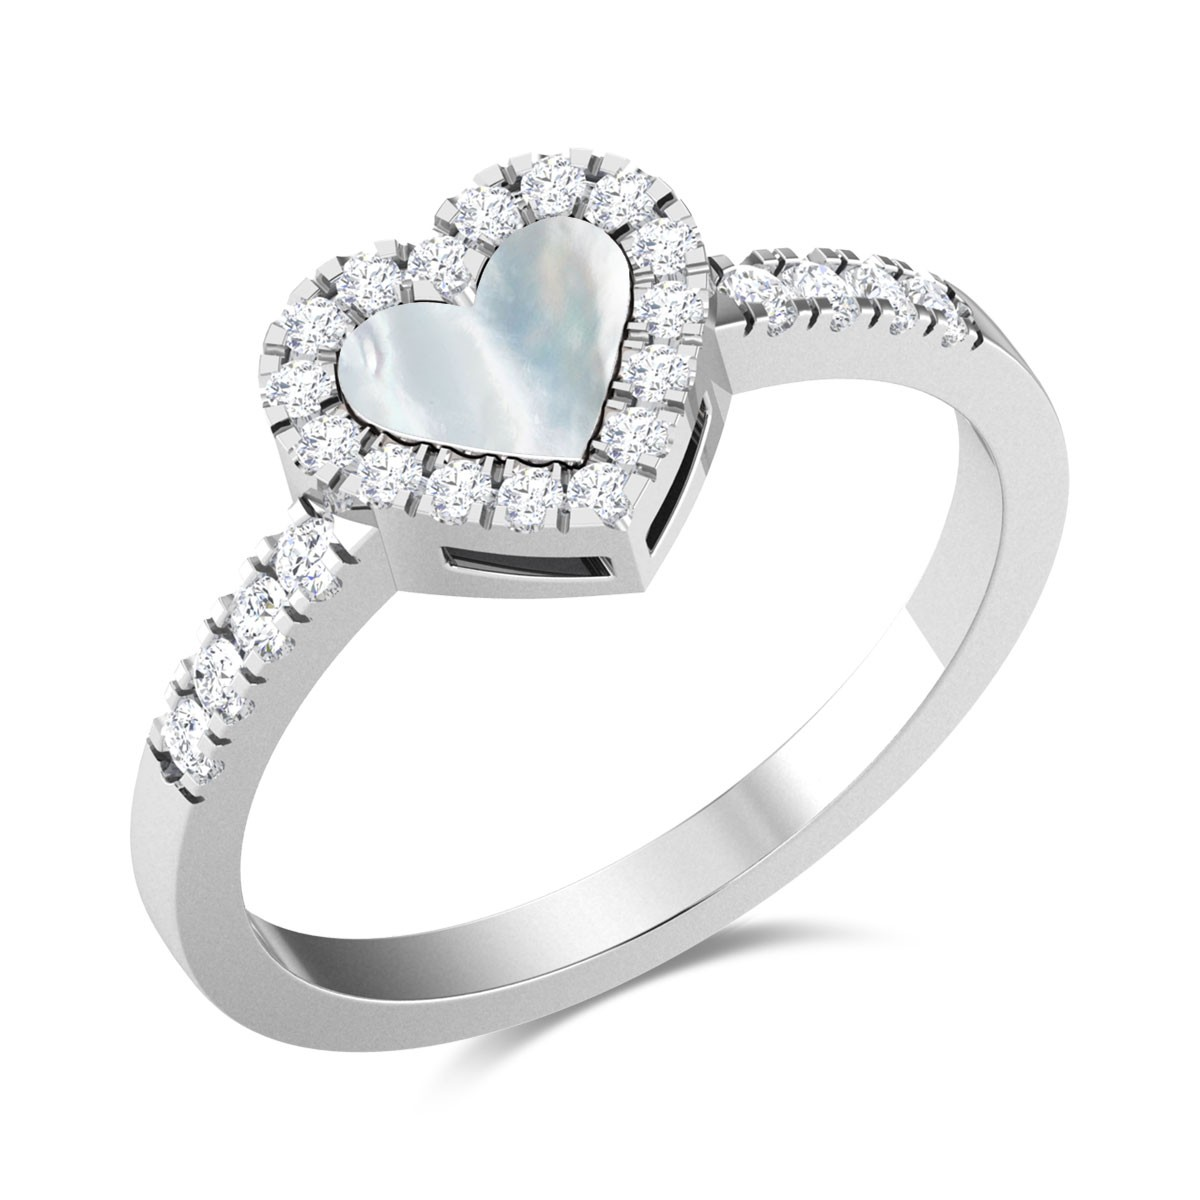 Grandico Diamond Ring